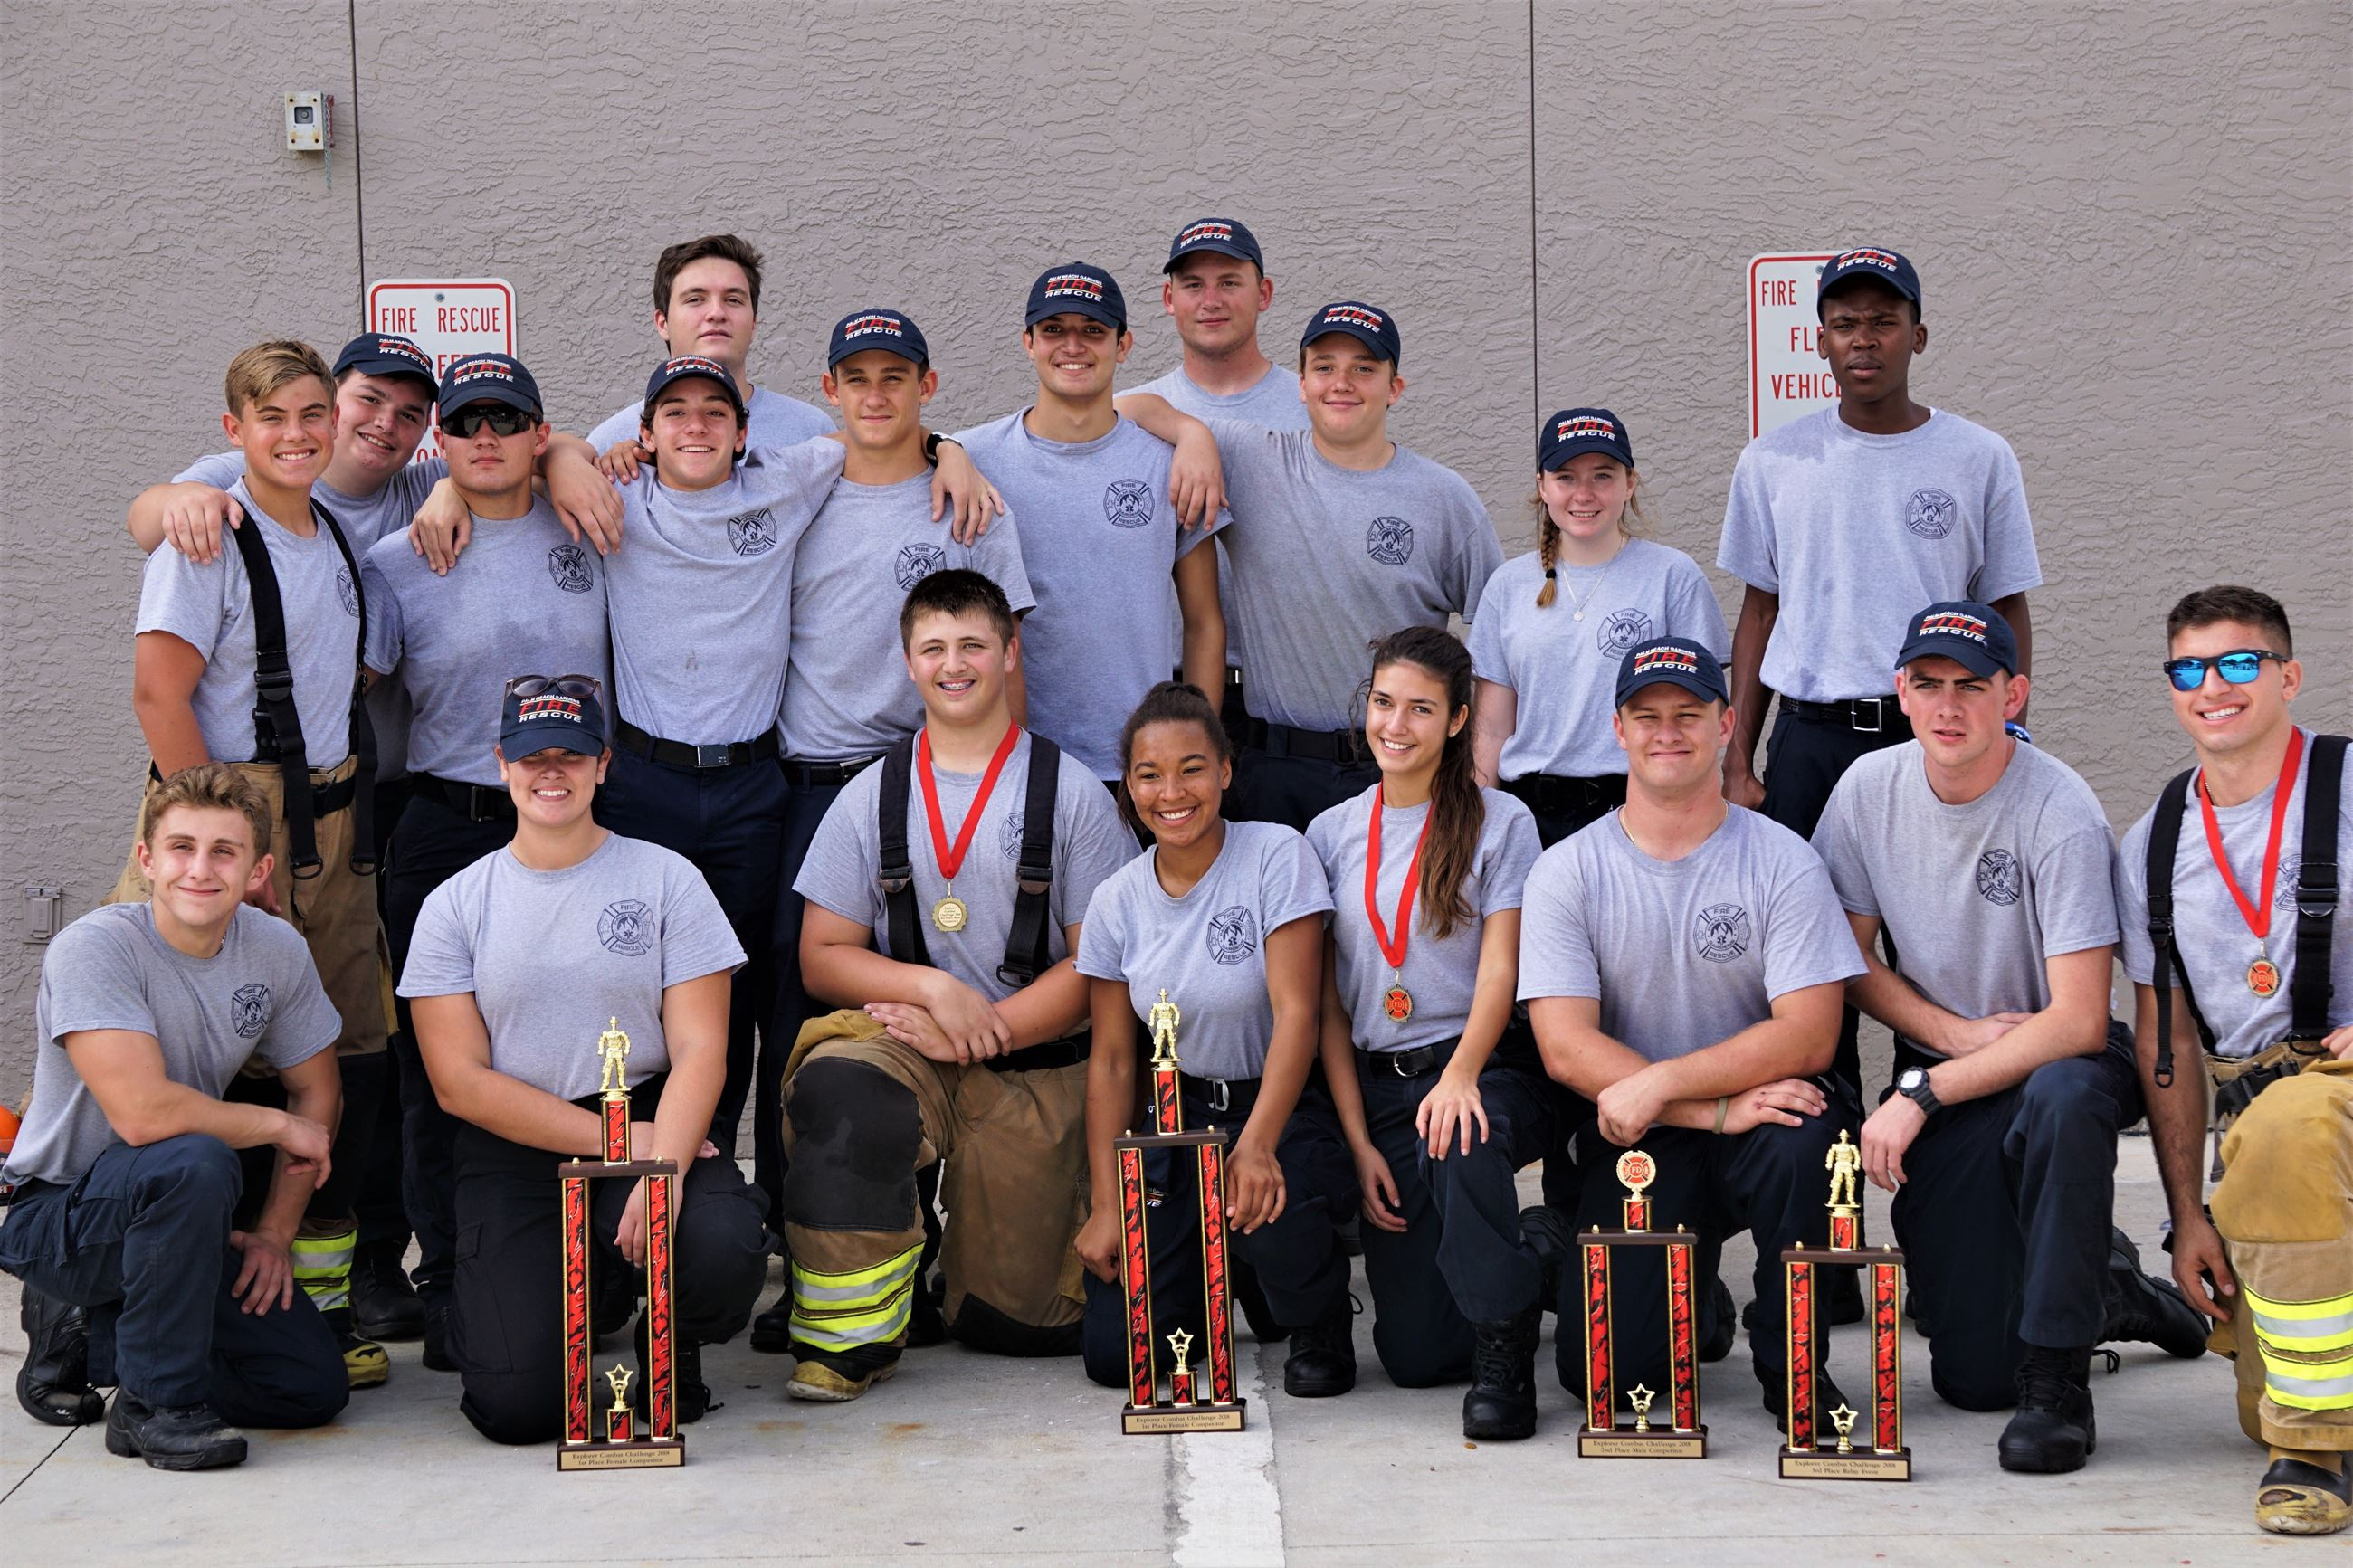 Explorers with Combat Challenge Trophies.